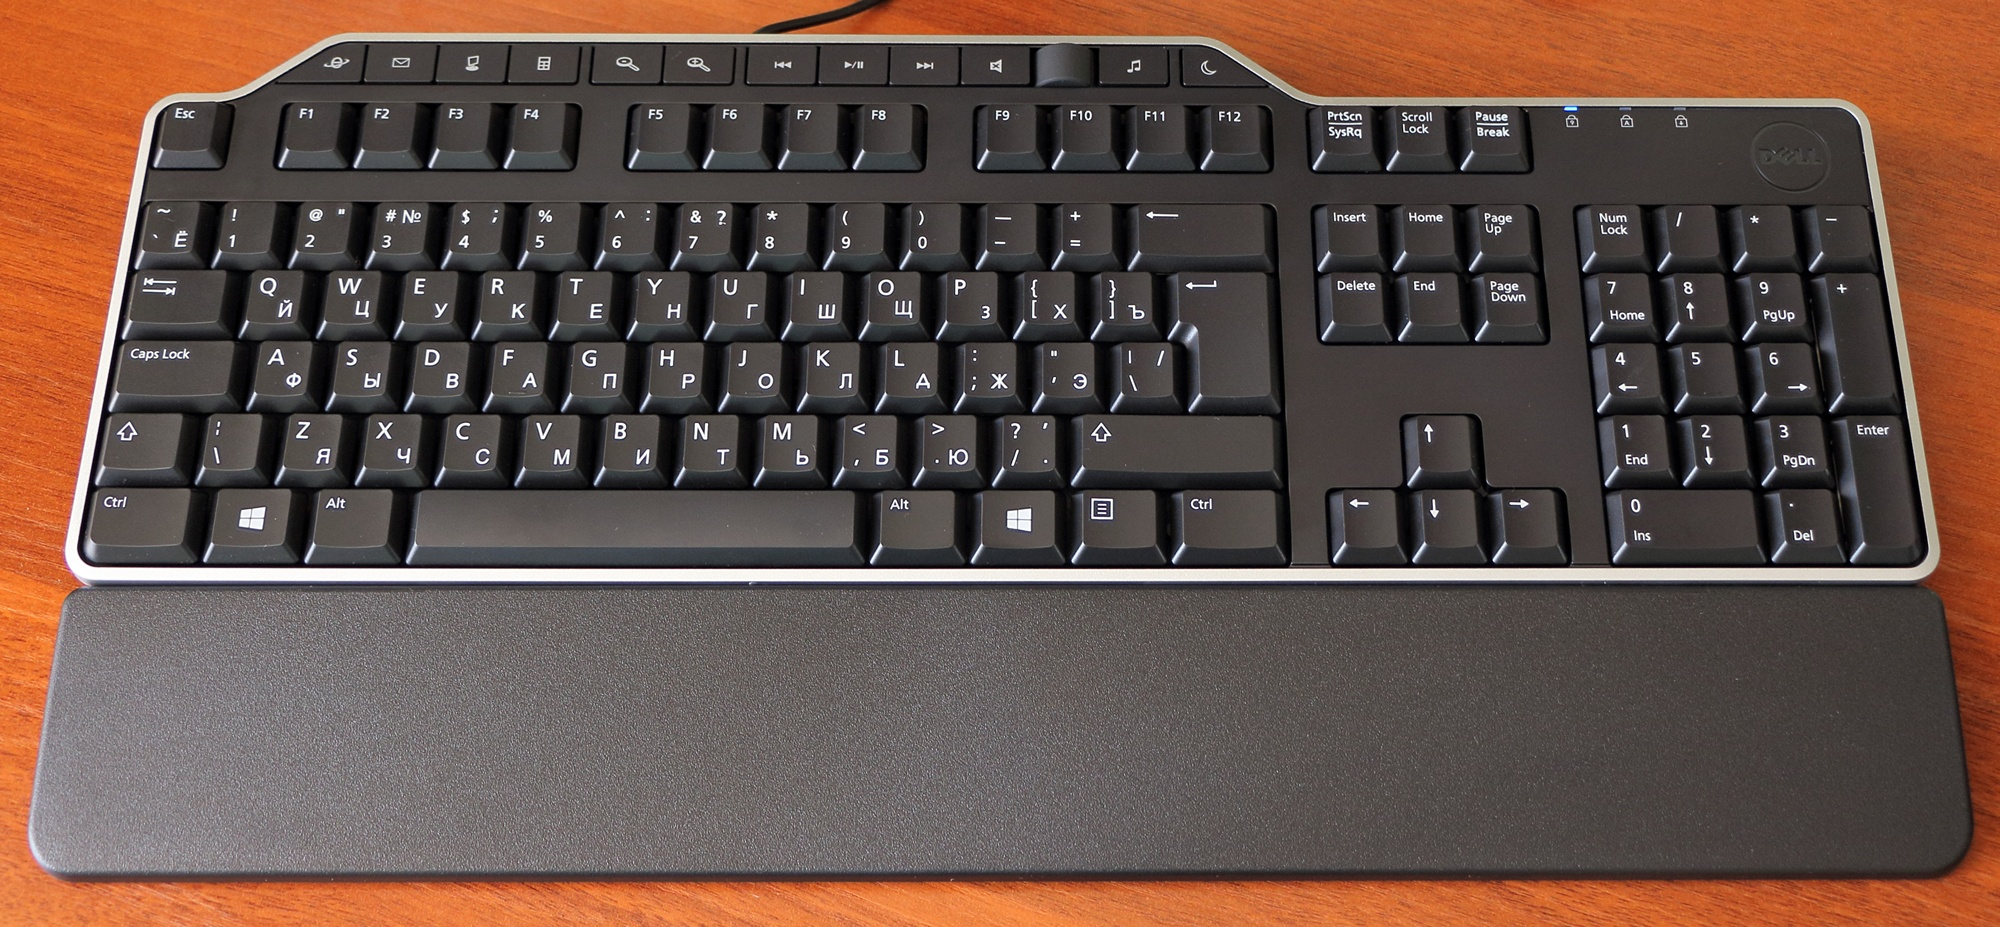 File:Dell KB522 keyboard with Russian layout.JPG